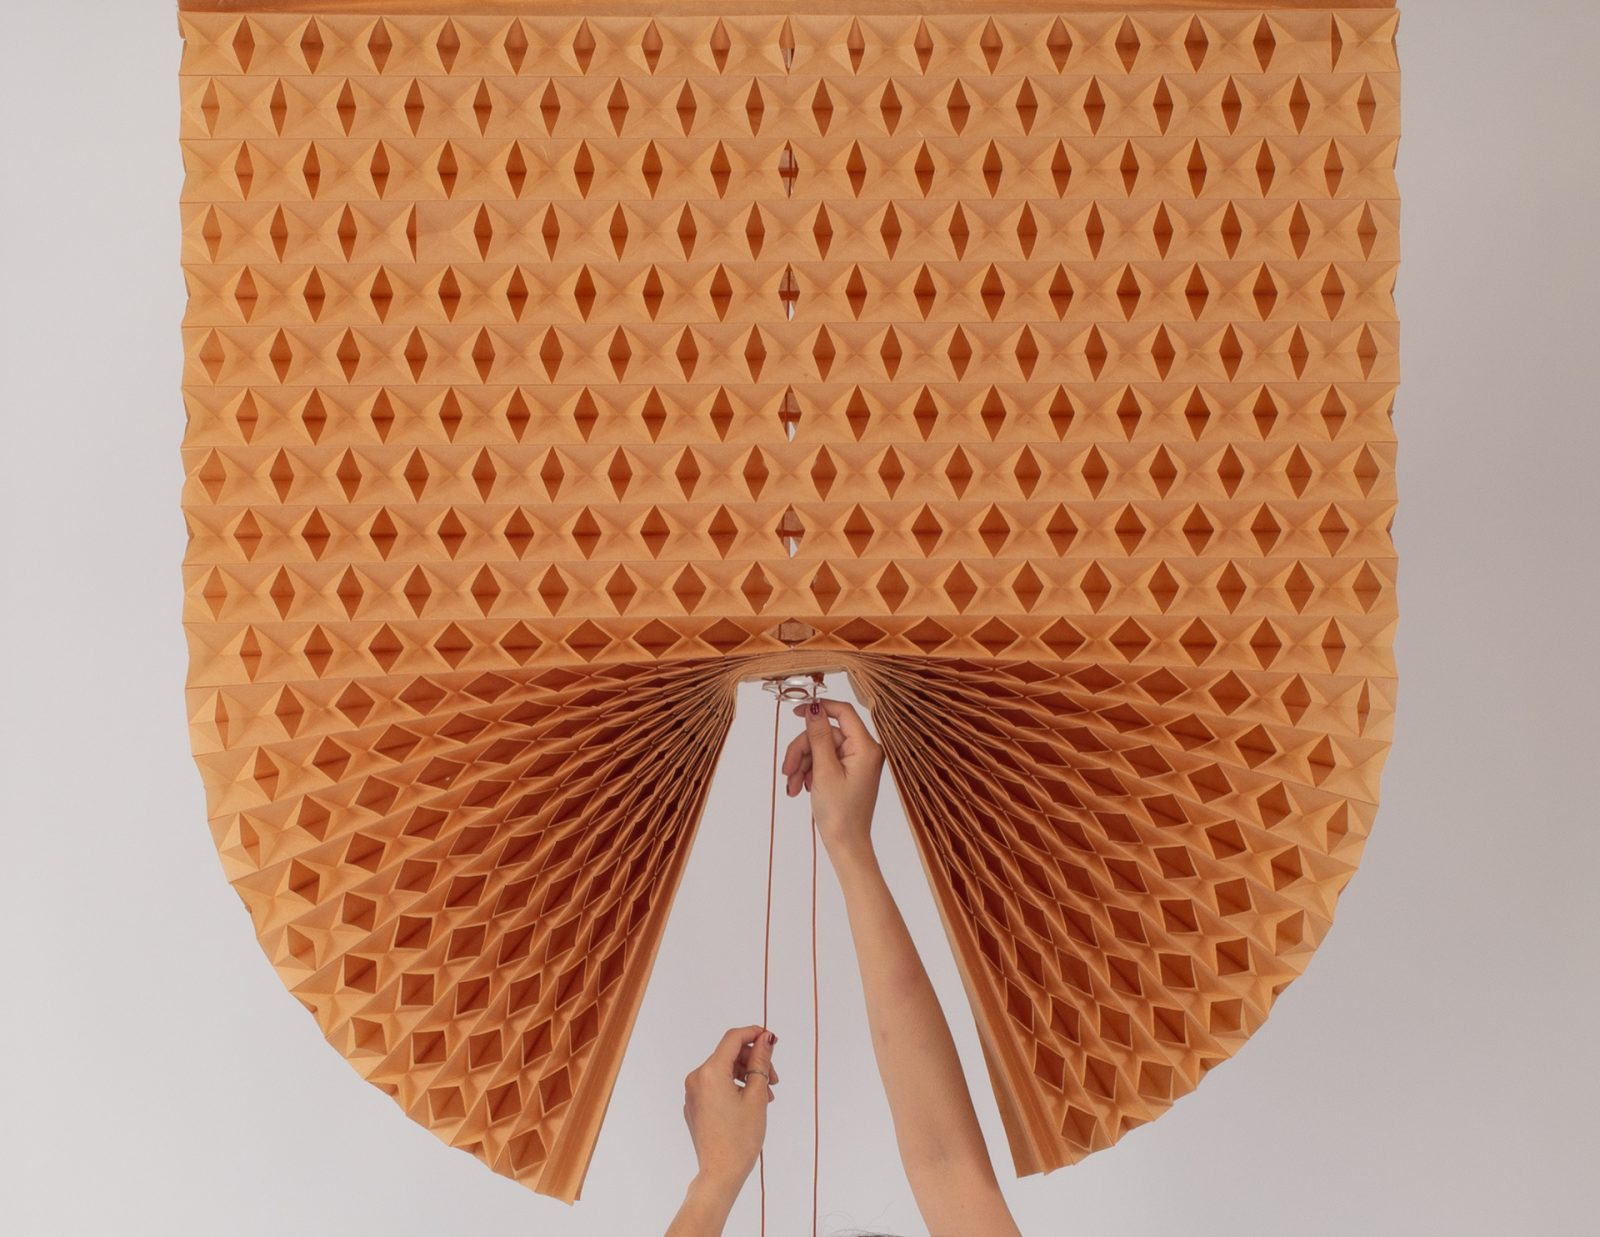 Natchar Sawatdichai's Paper Blinds Are a Testament to Modern Artisanry